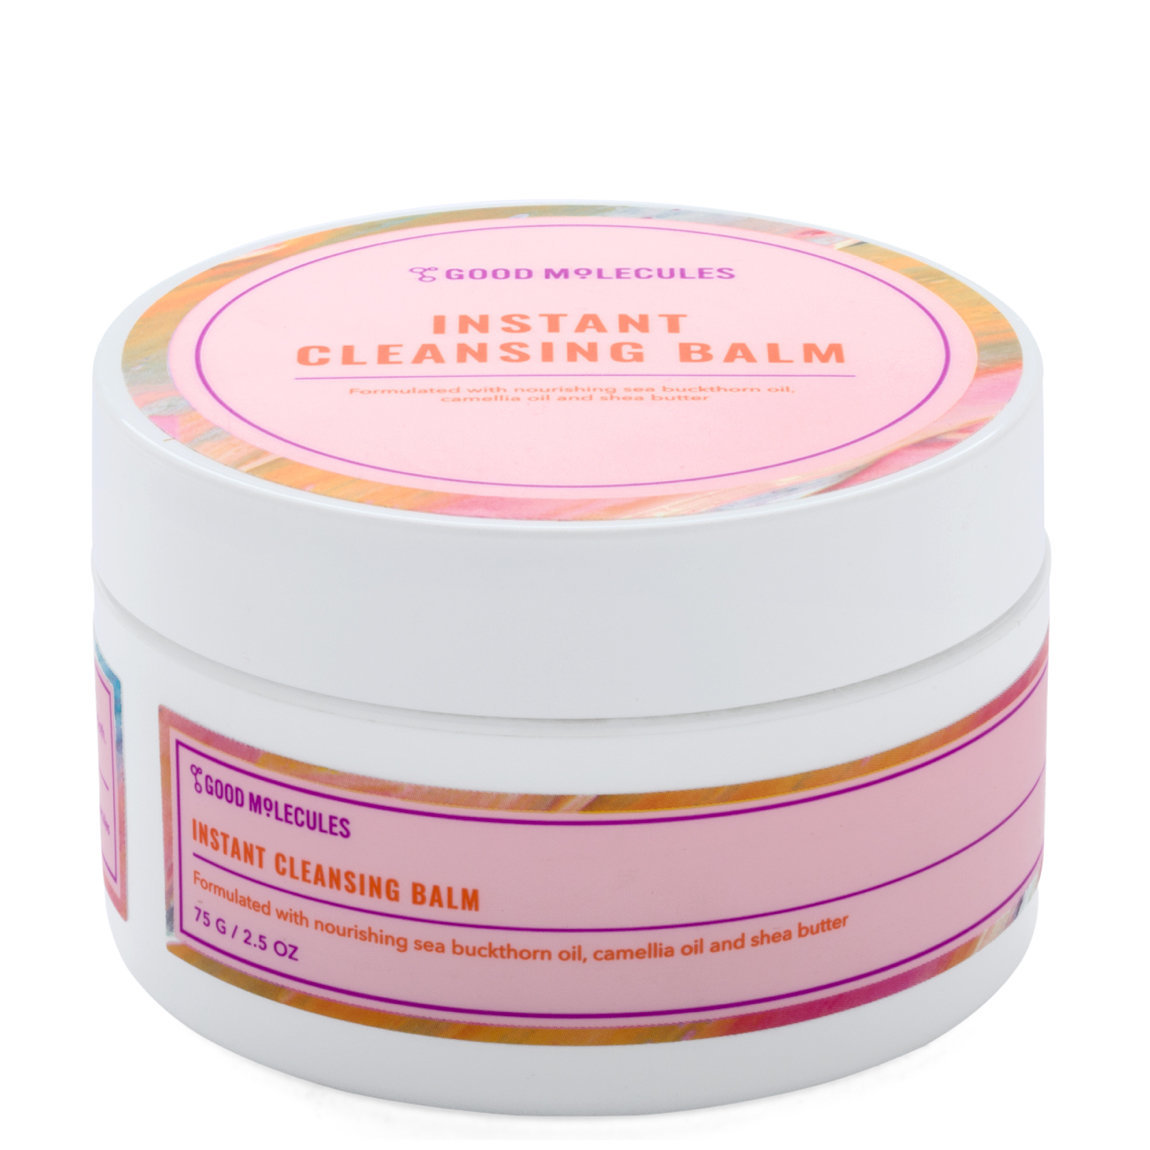 Good Molecules Instant Cleansing Balm Single product smear.